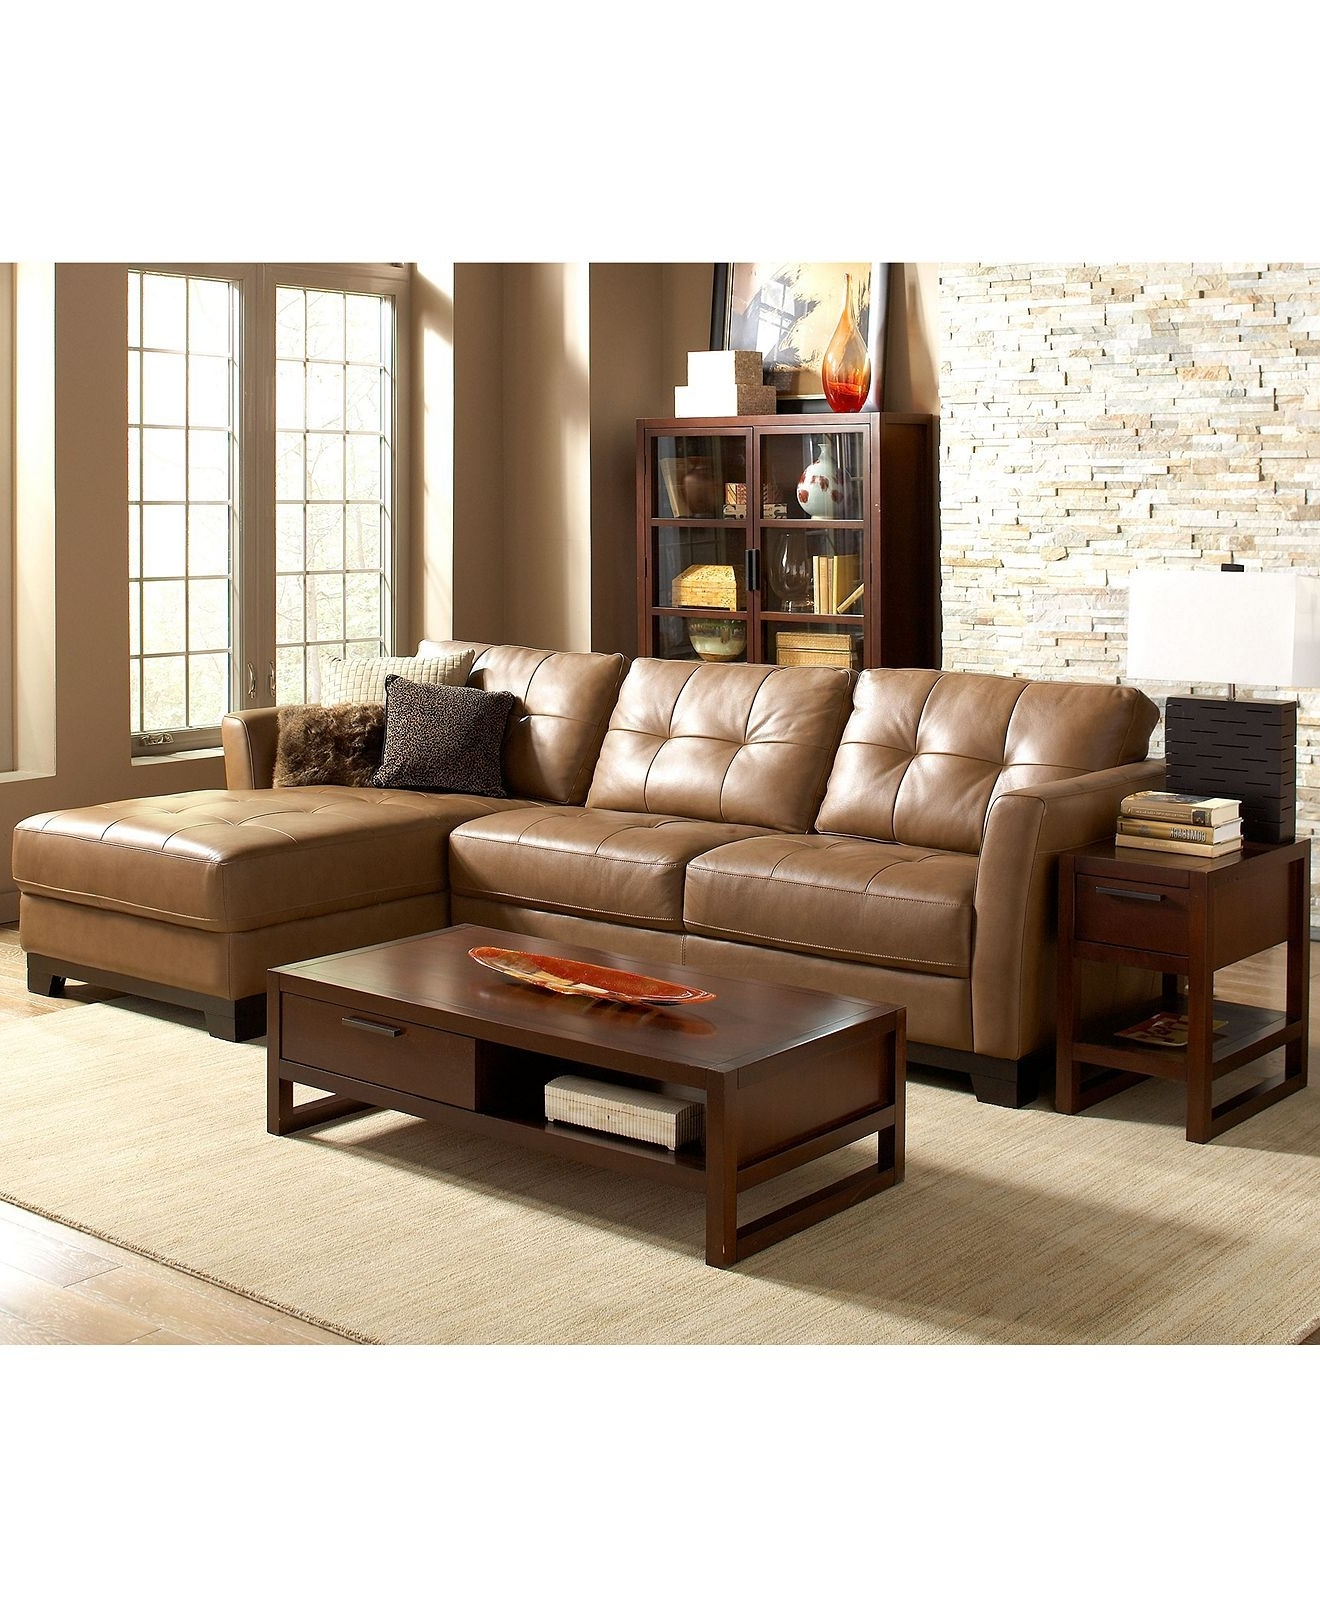 2018 Economax Sectional Sofas Throughout Martino Leather Sectional Living Room Furniture Sets & Pieces (View 3 of 15)